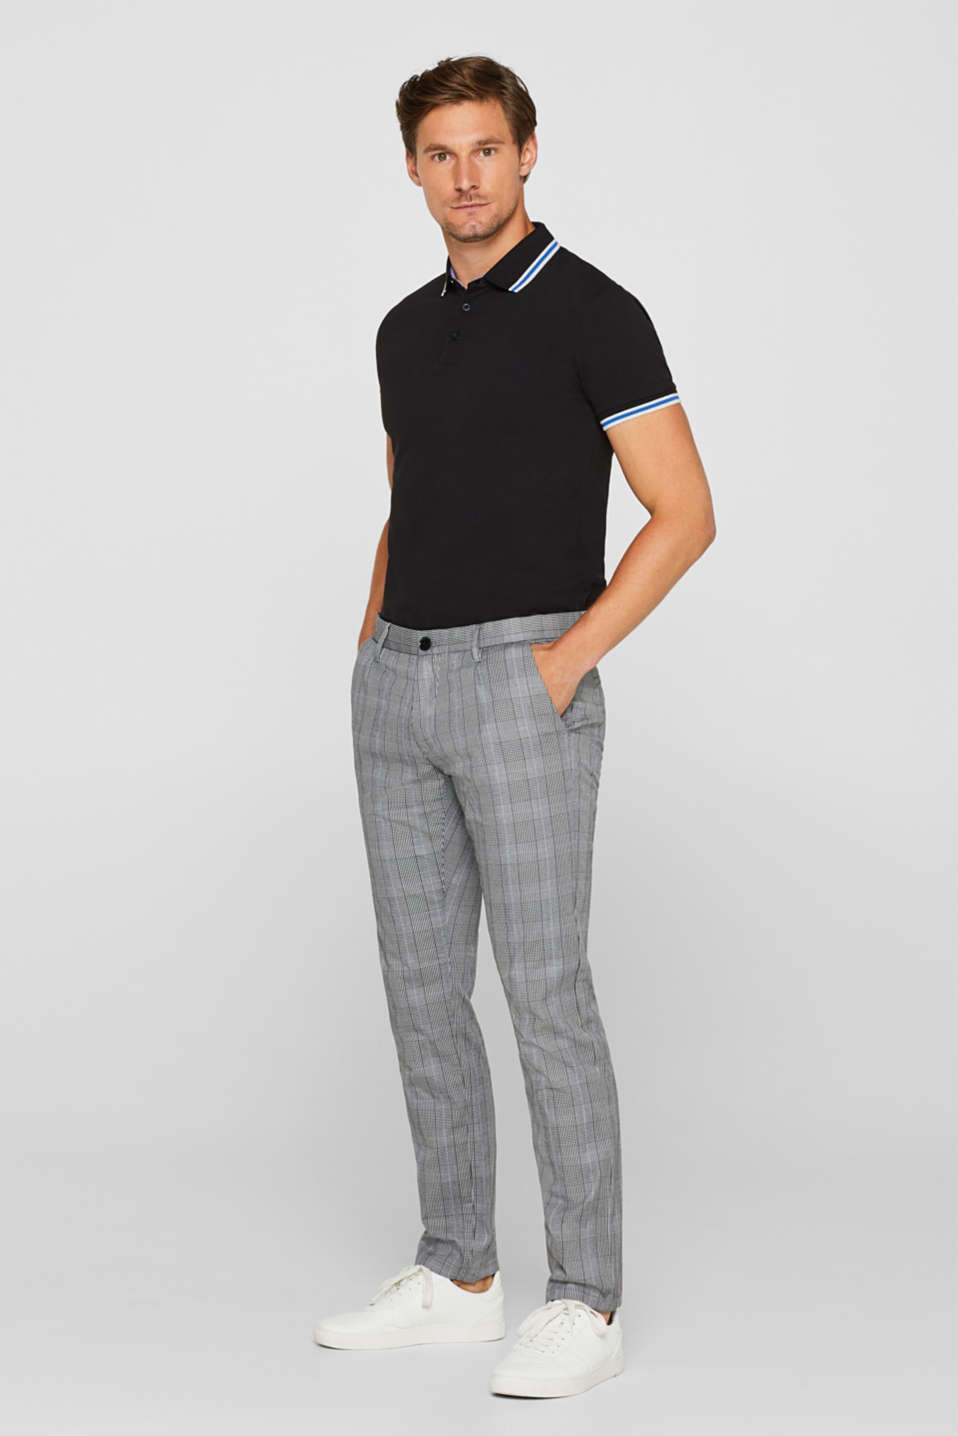 Trousers with a check pattern, made of stretch cotton, ANTHRACITE, detail image number 1